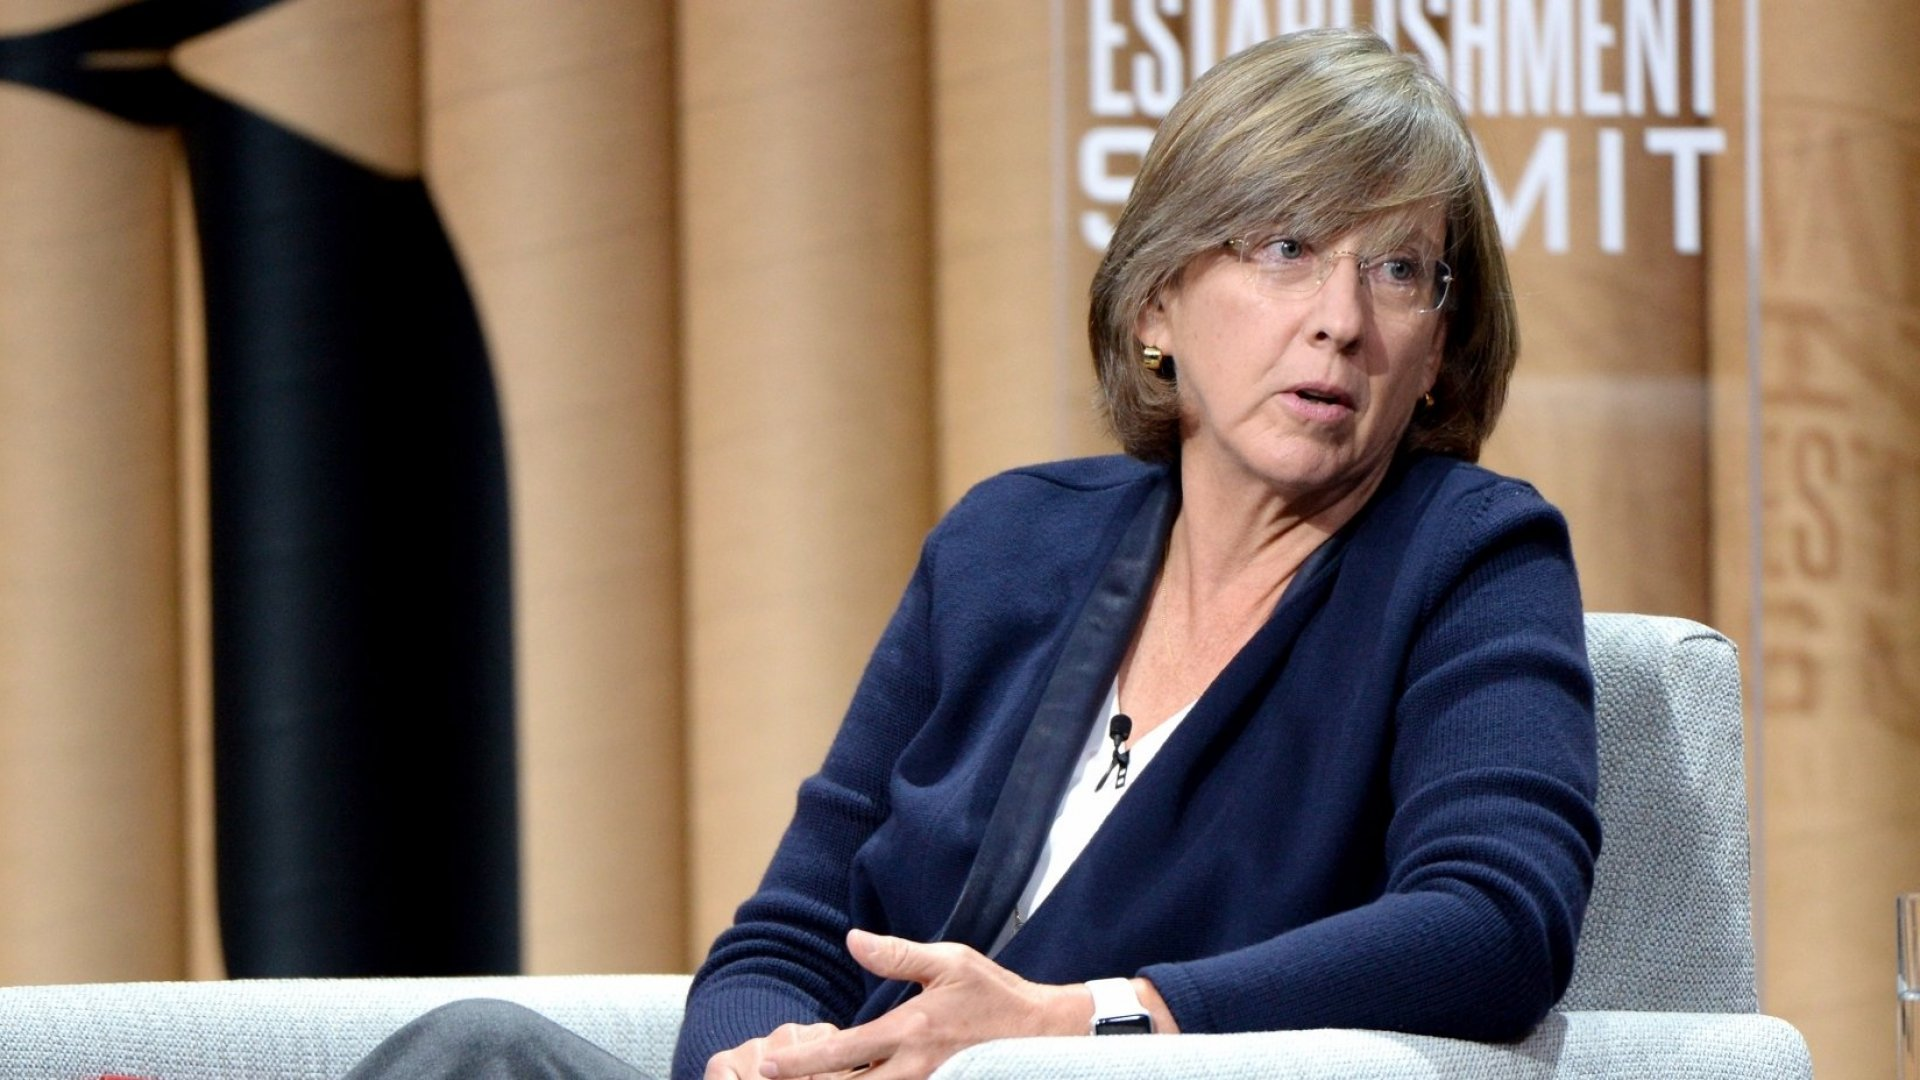 10 Inspiring Facts About Venture Capitalist Mary Meeker